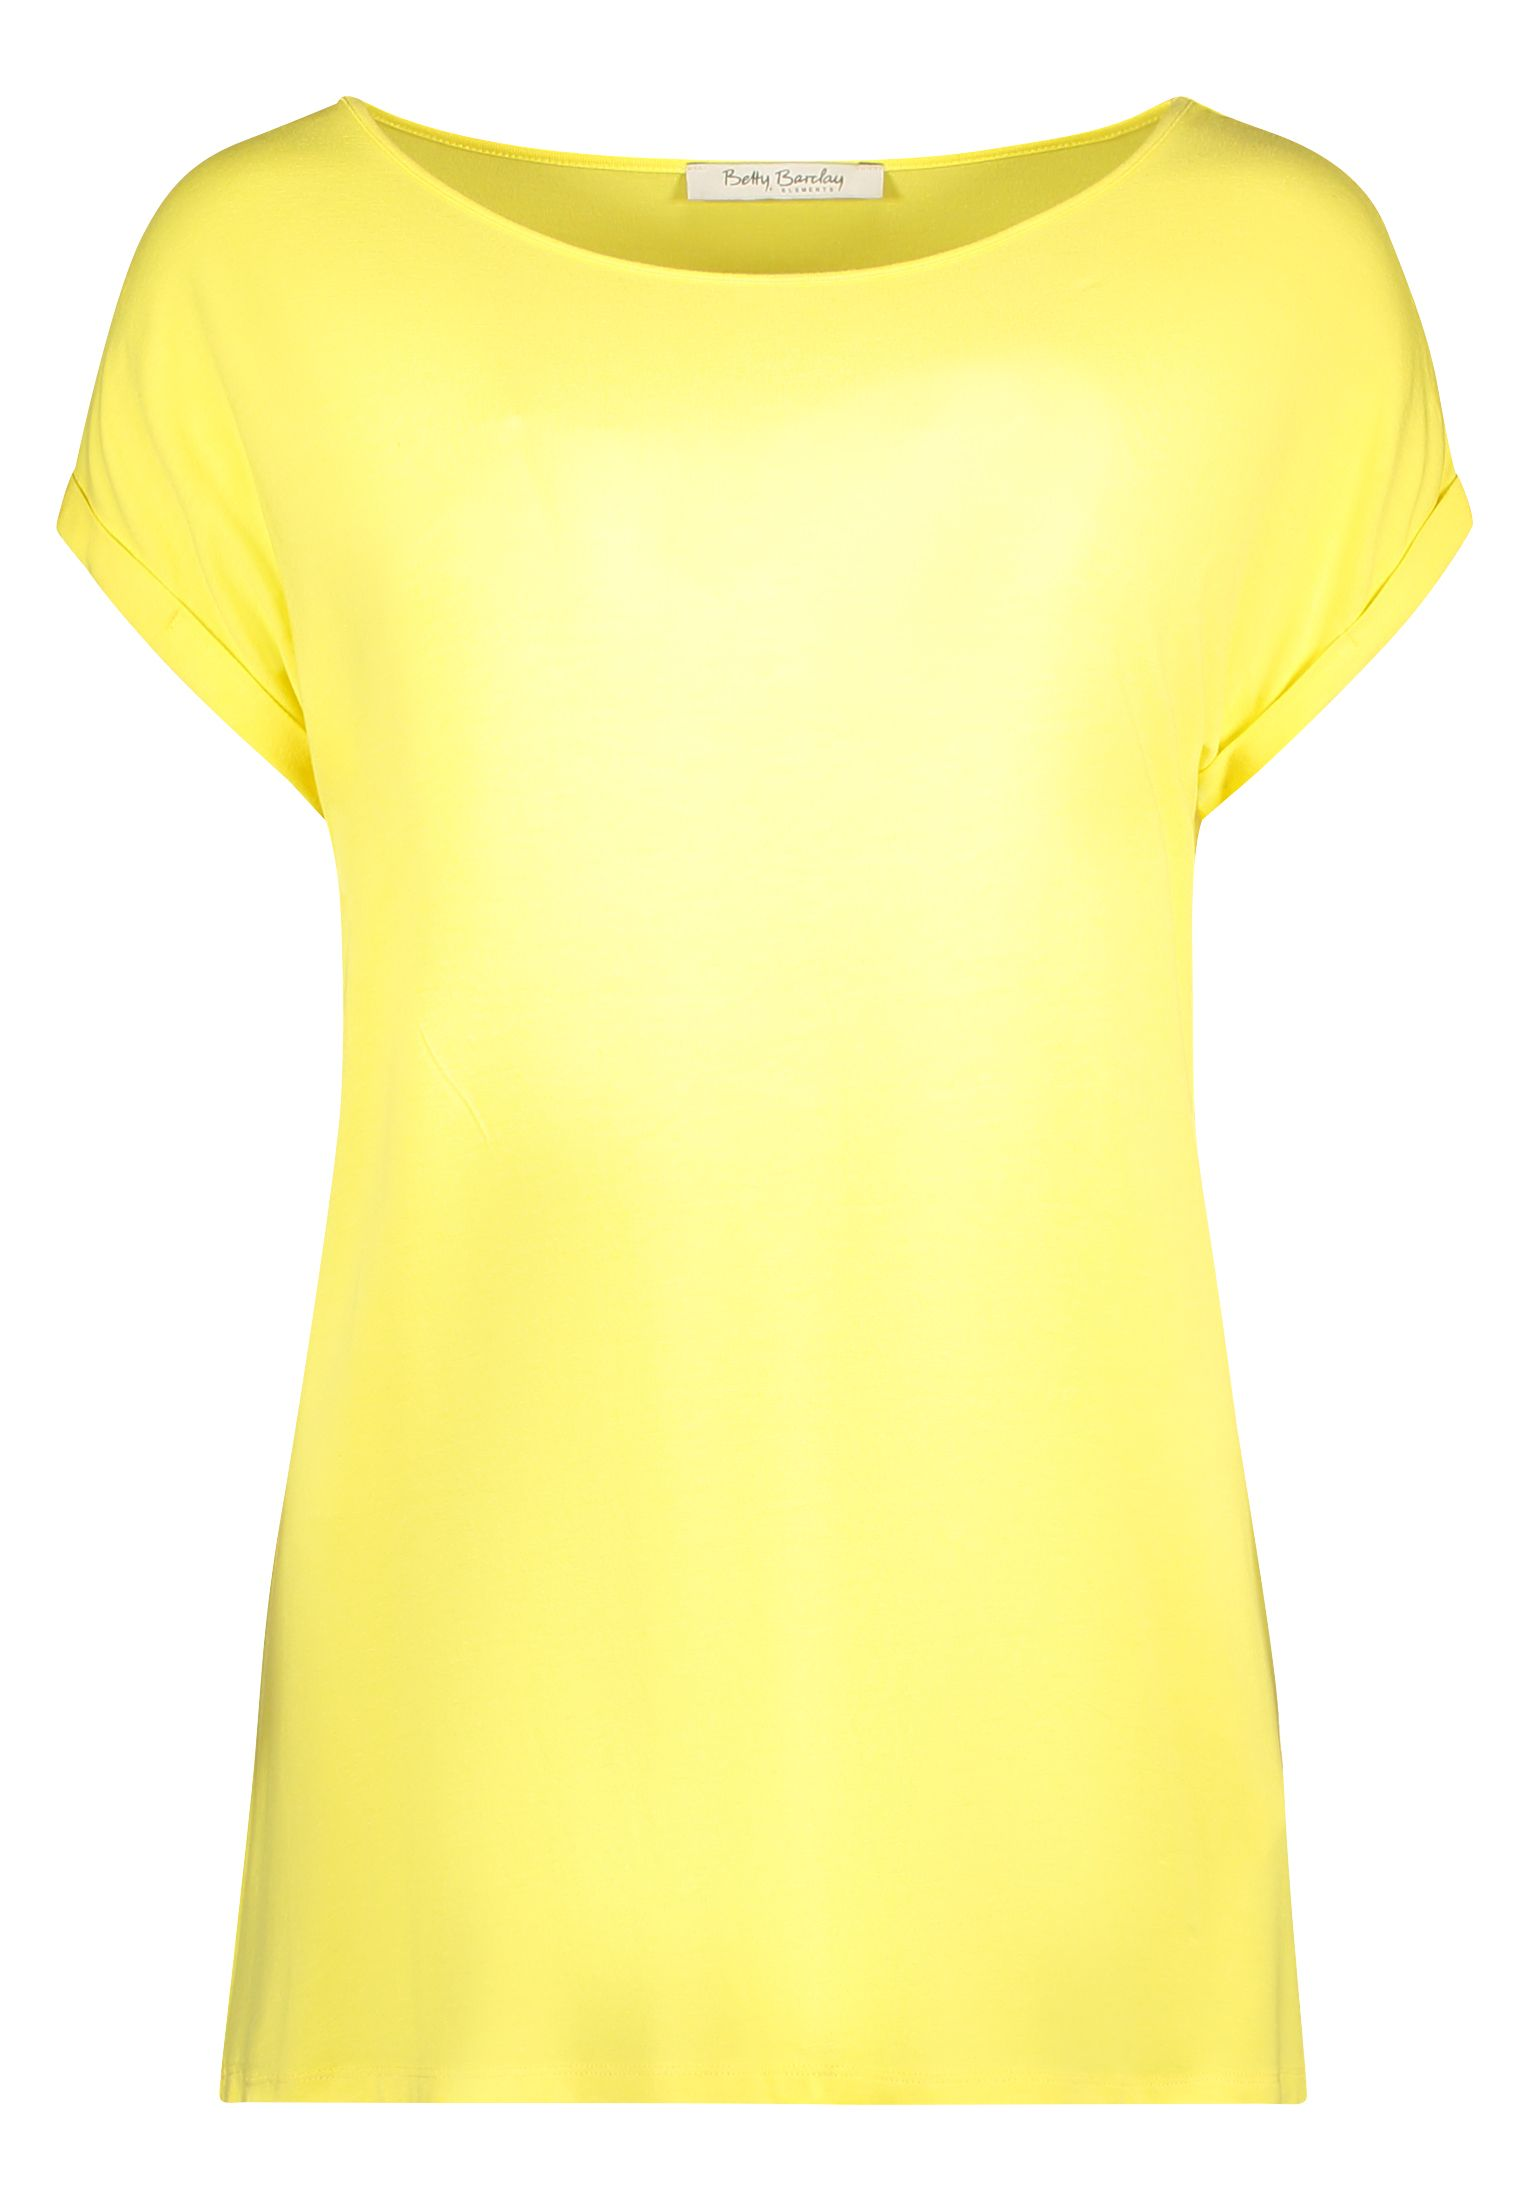 Betty Barclay Cap Sleeve T-Shirt, Yellow